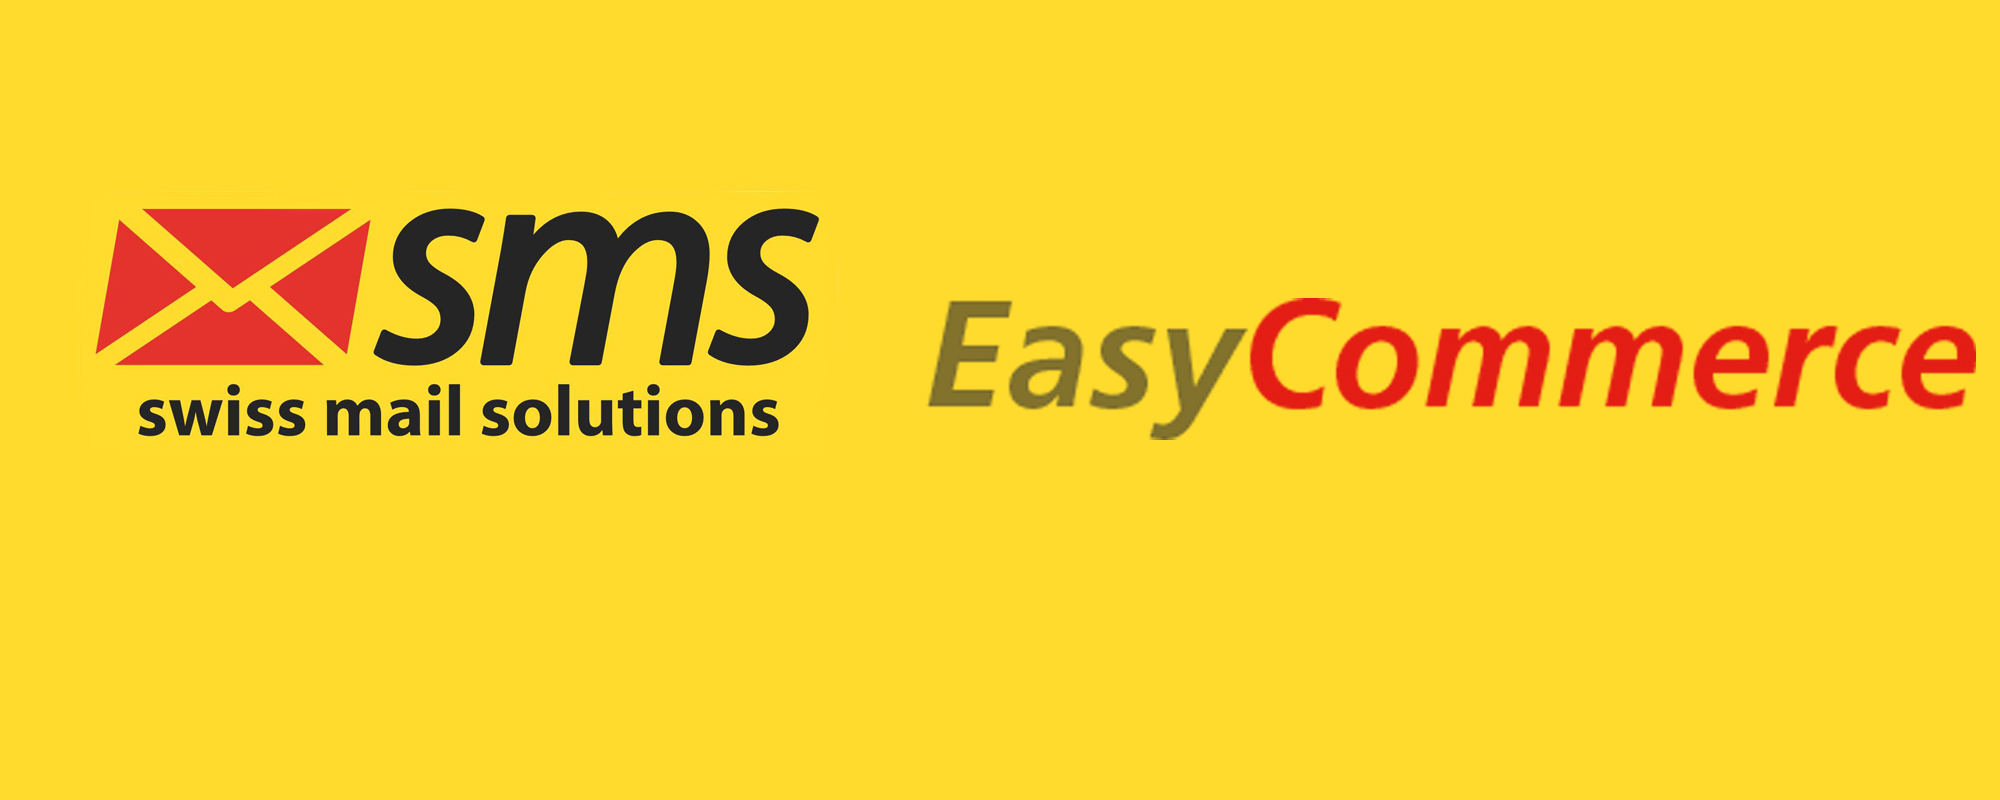 Swiss Mail Solutions - Take a Look Inside Our EasyCommerce Platform